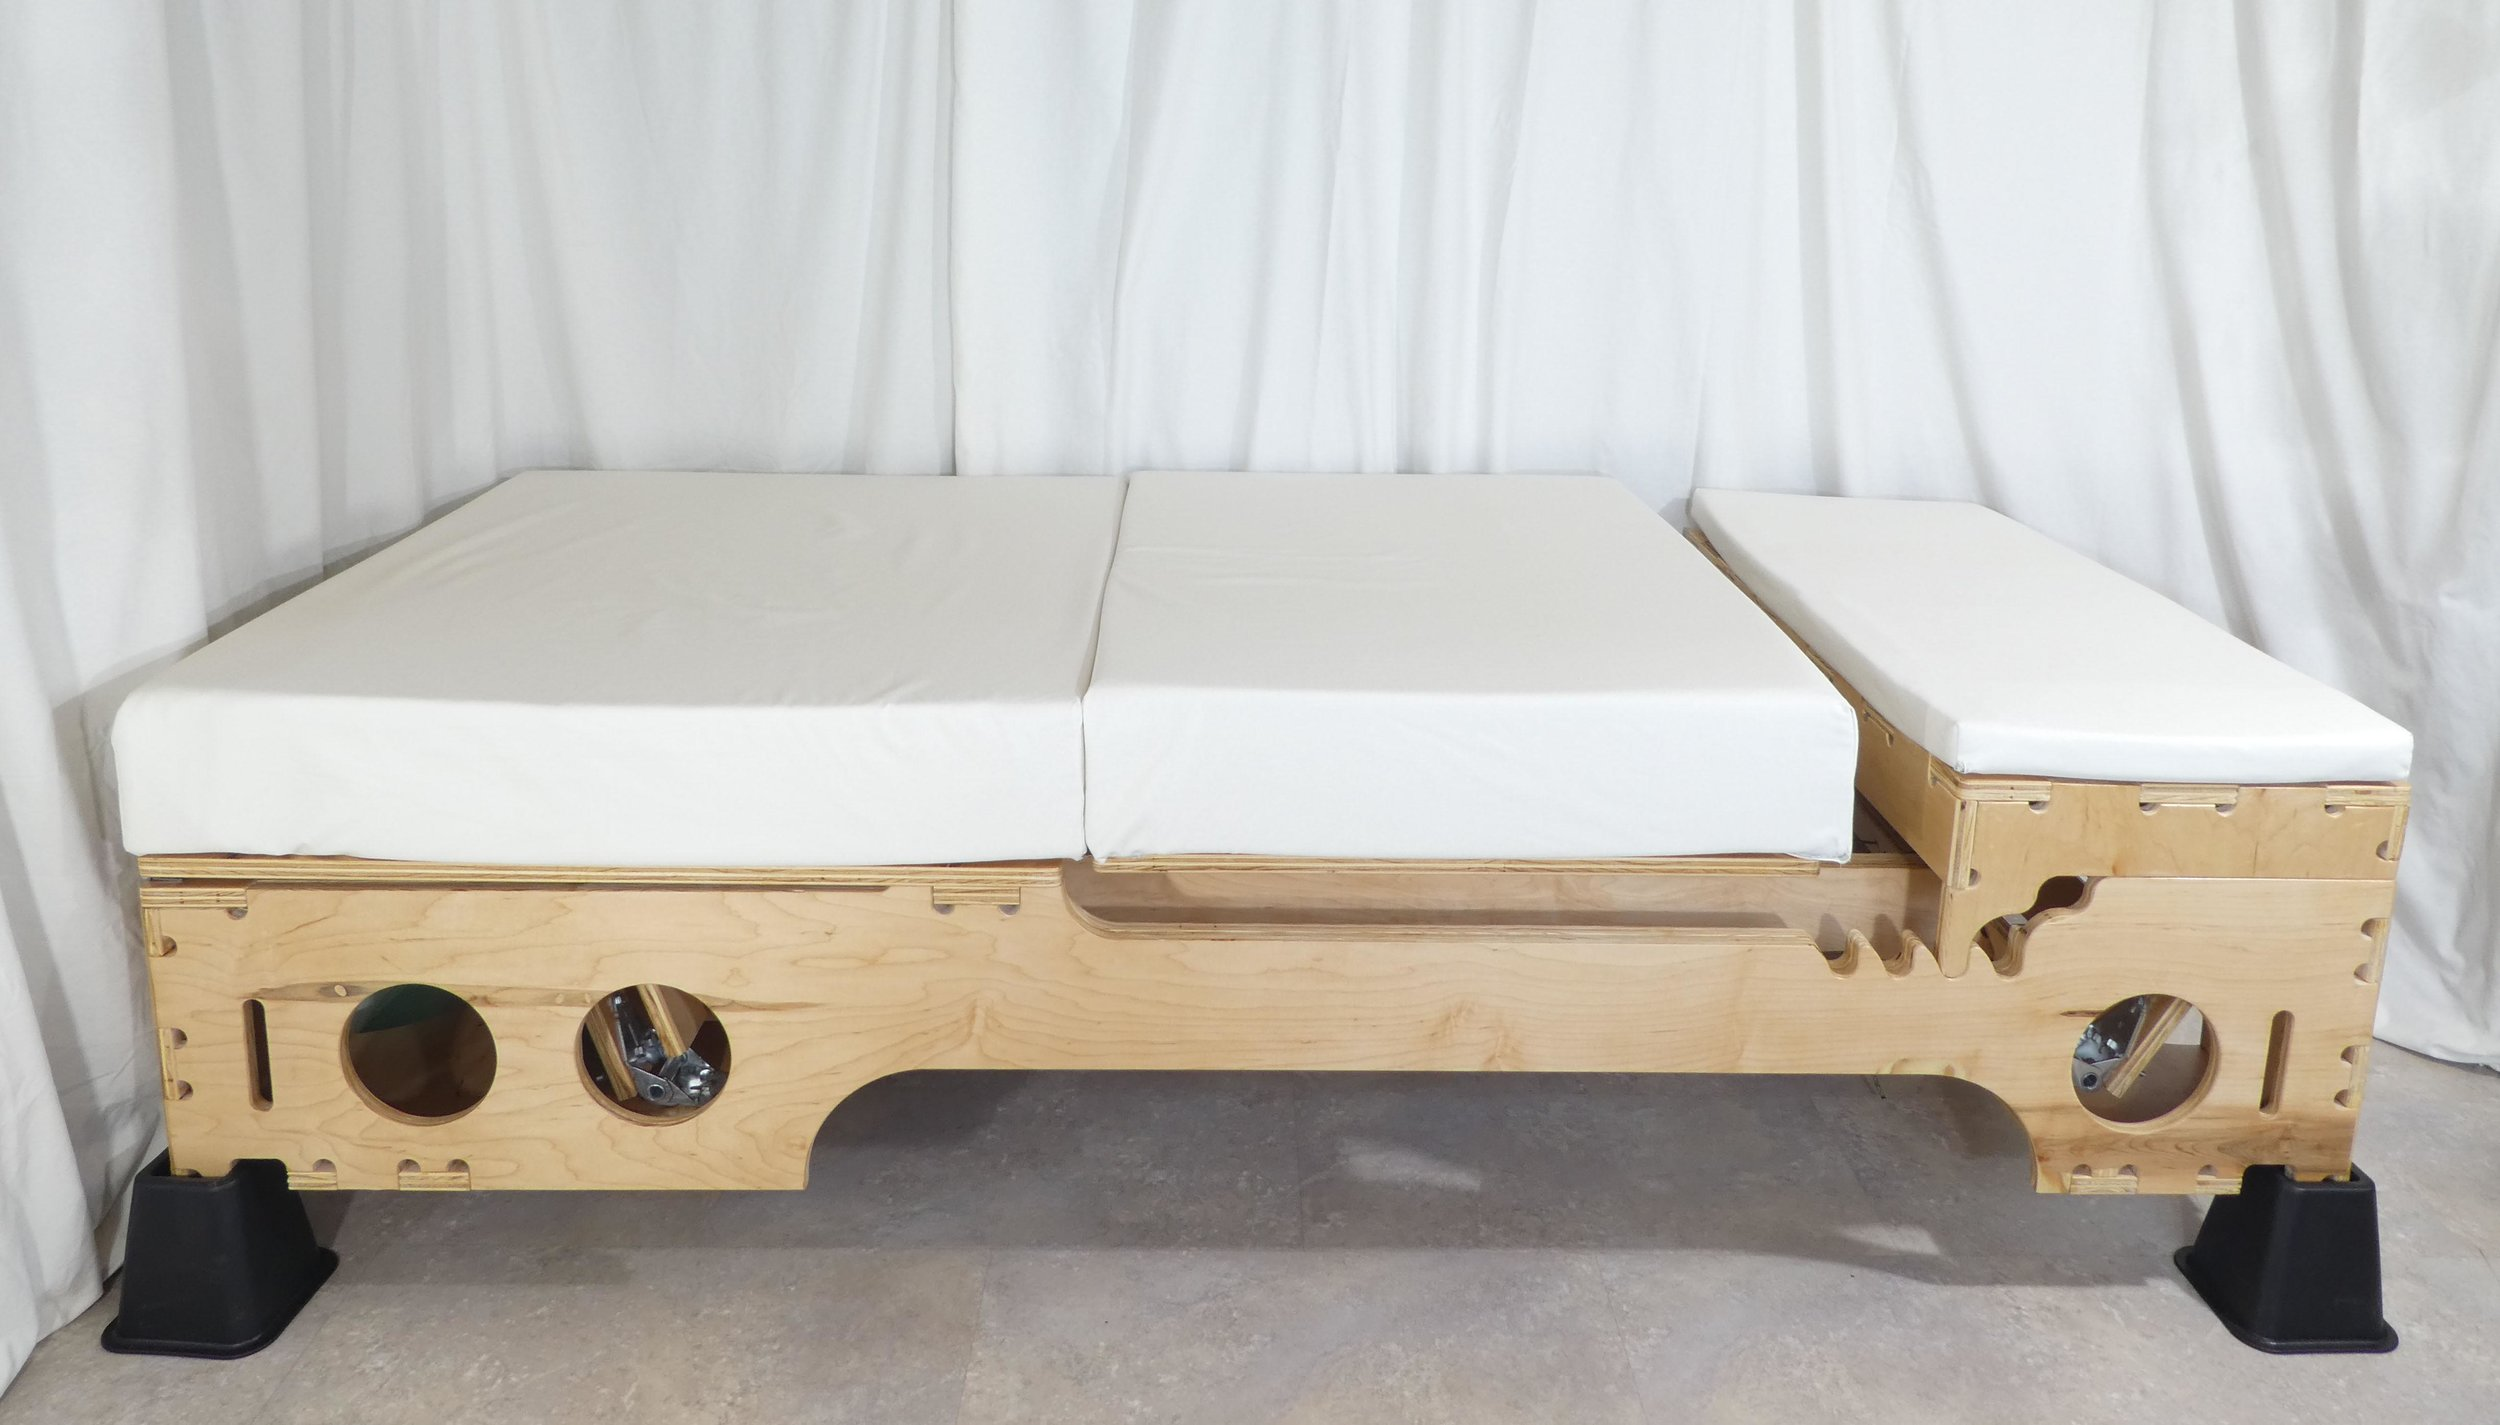 In this photo, the bottom sheet has been removed. Custom, washable mattress covers protect each of the mattress sections.